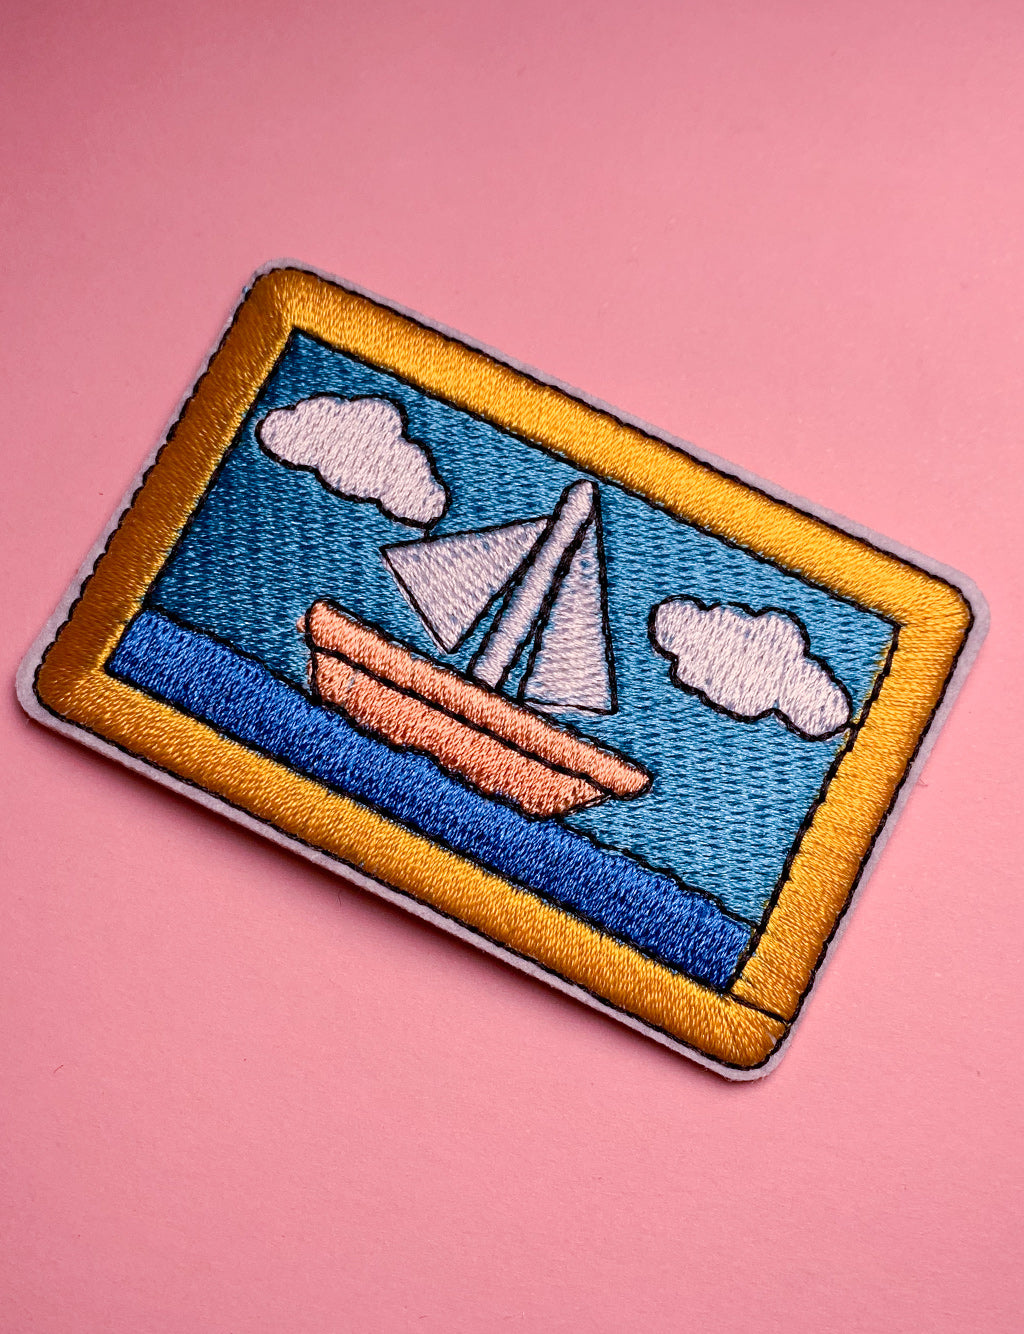 SAILING PICTURE PATCH